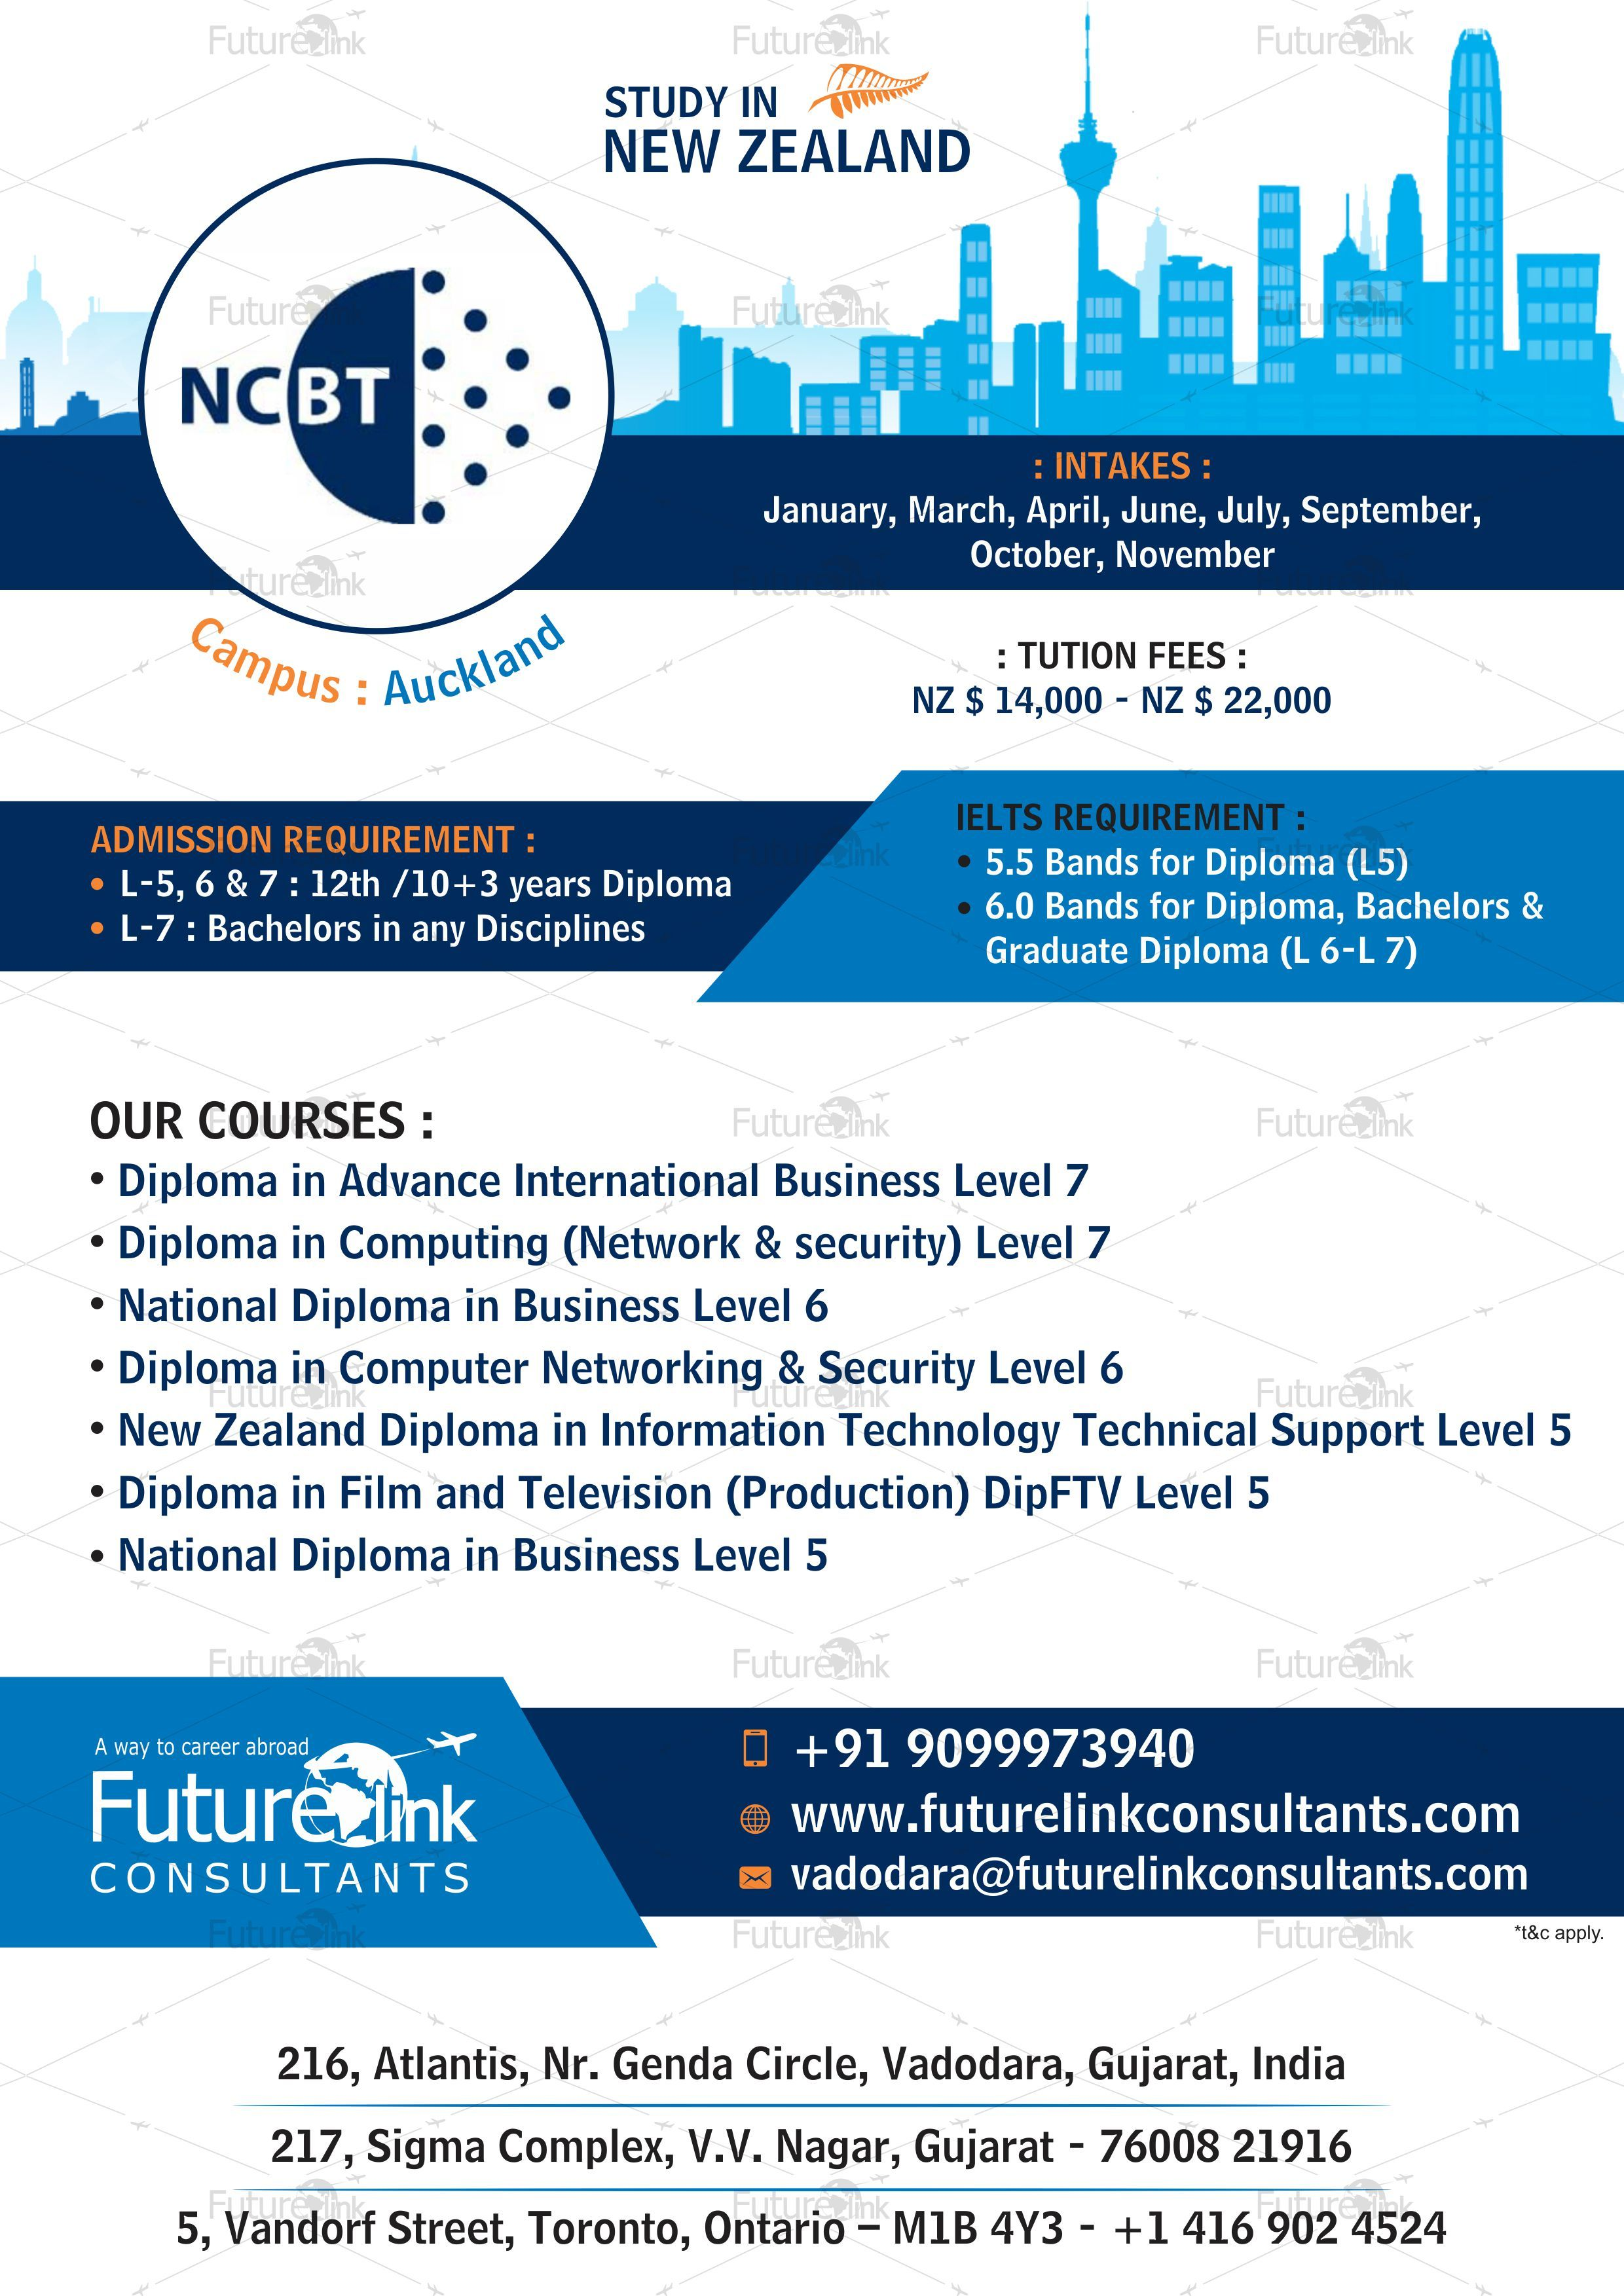 Dear students greetings from future link consultants study in dear students greetings from future link consultants study in newzealand apply in ncbt newton college of business technology kindly email us your kristyandbryce Image collections